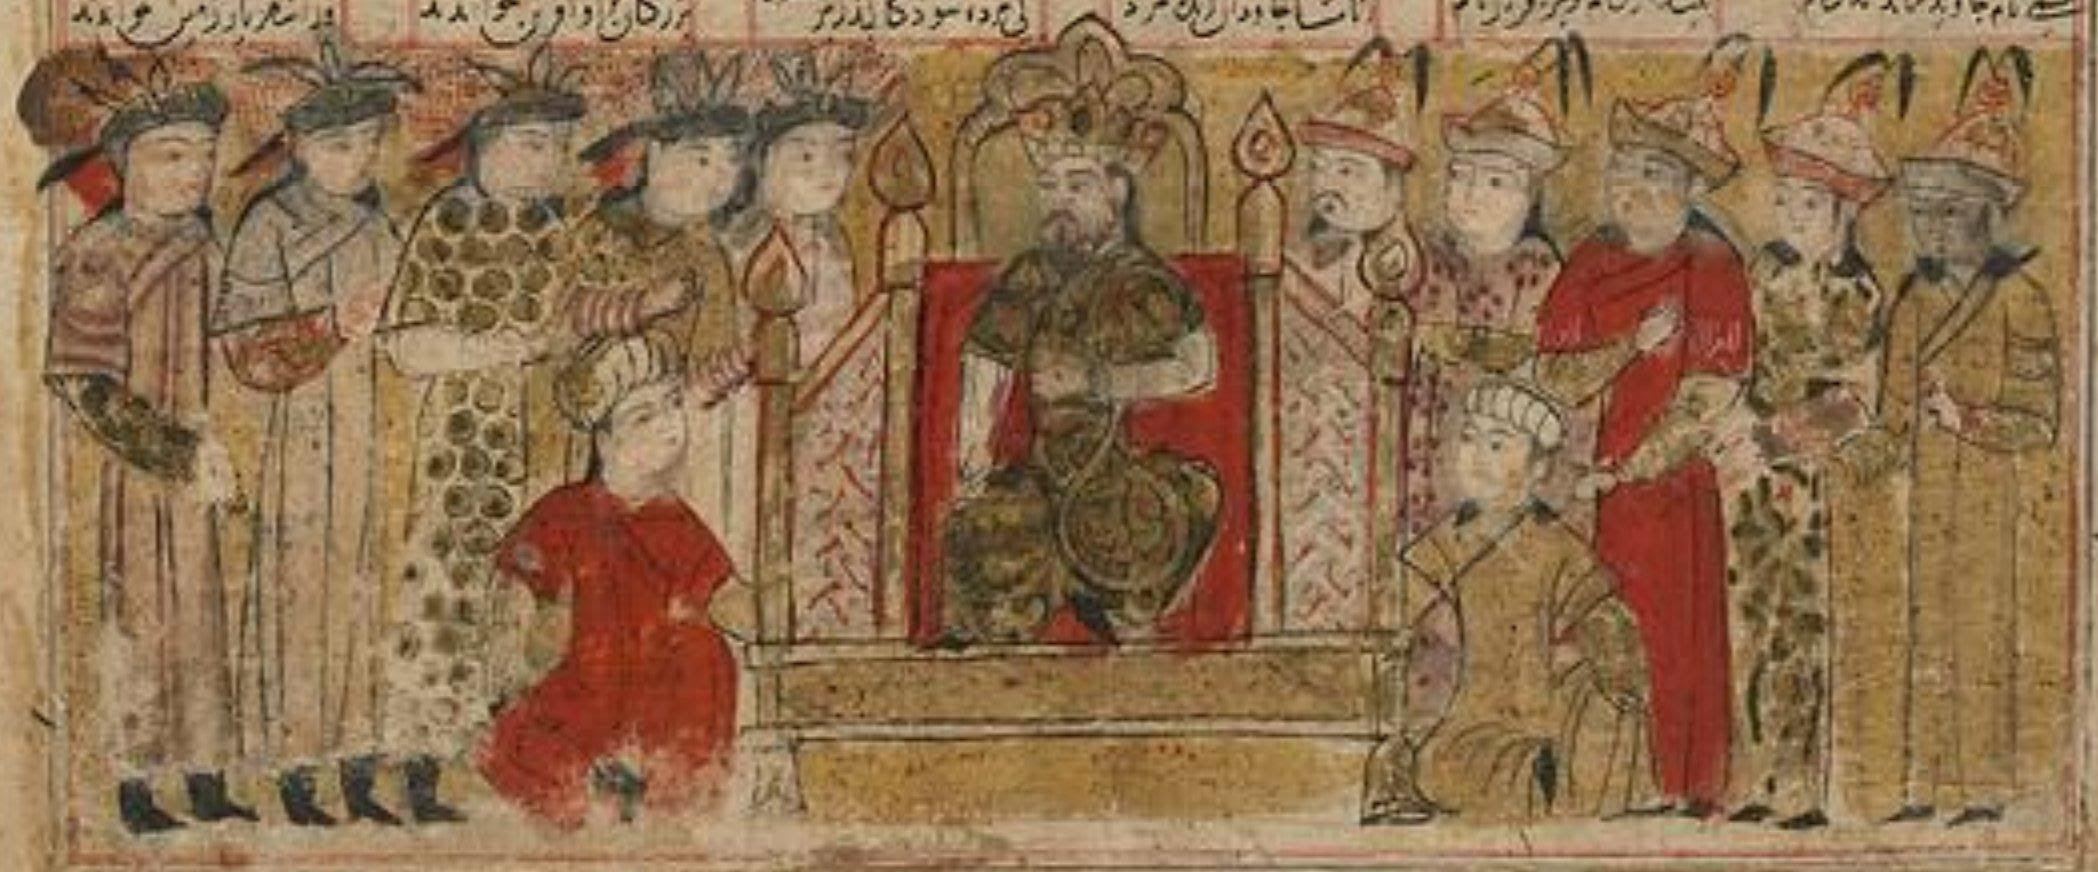 http://upload.wikimedia.org/wikipedia/commons/b/b9/Yazdegerd_III_coronation.jpg